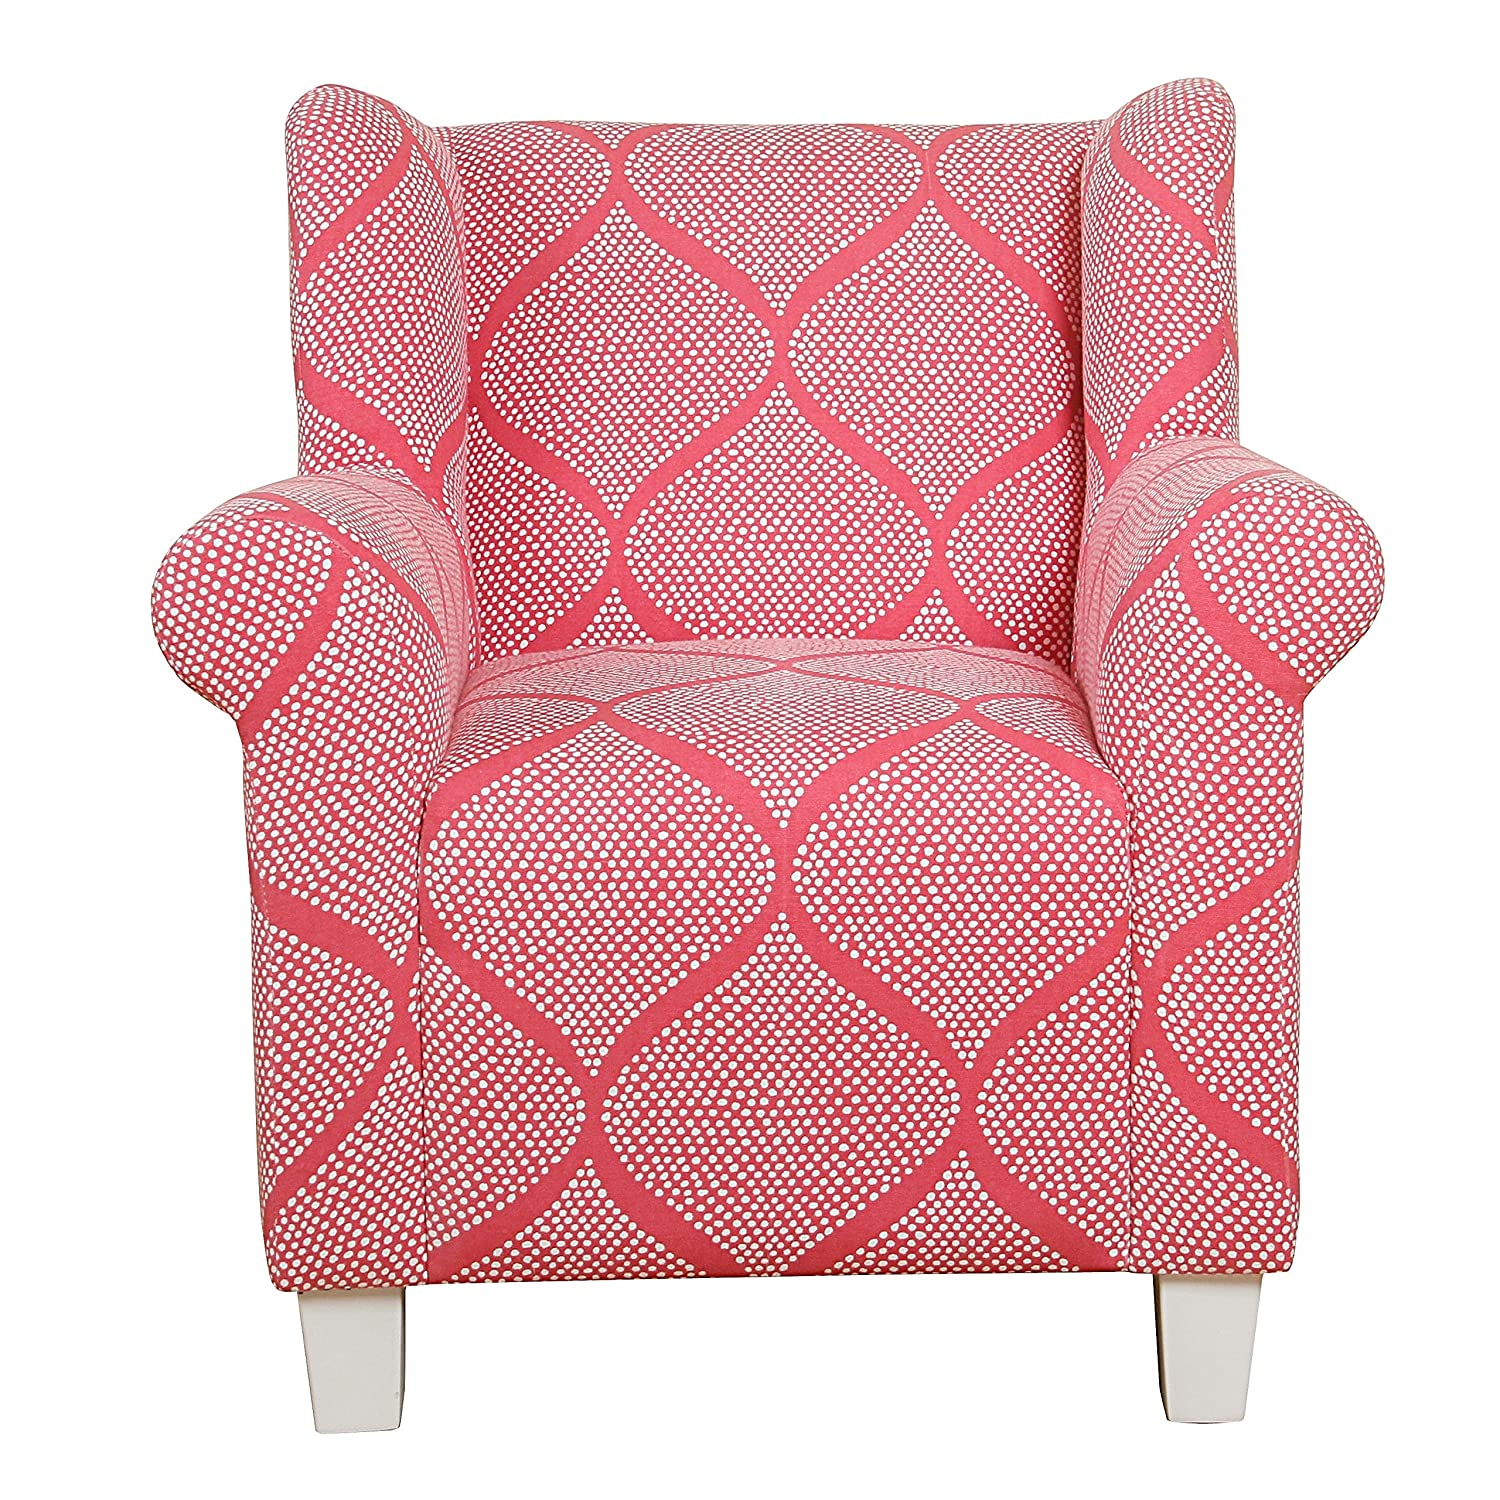 HomePop K6864-F1538 Juvenile Medallion Print Chair Childrens Furniture Pink and White